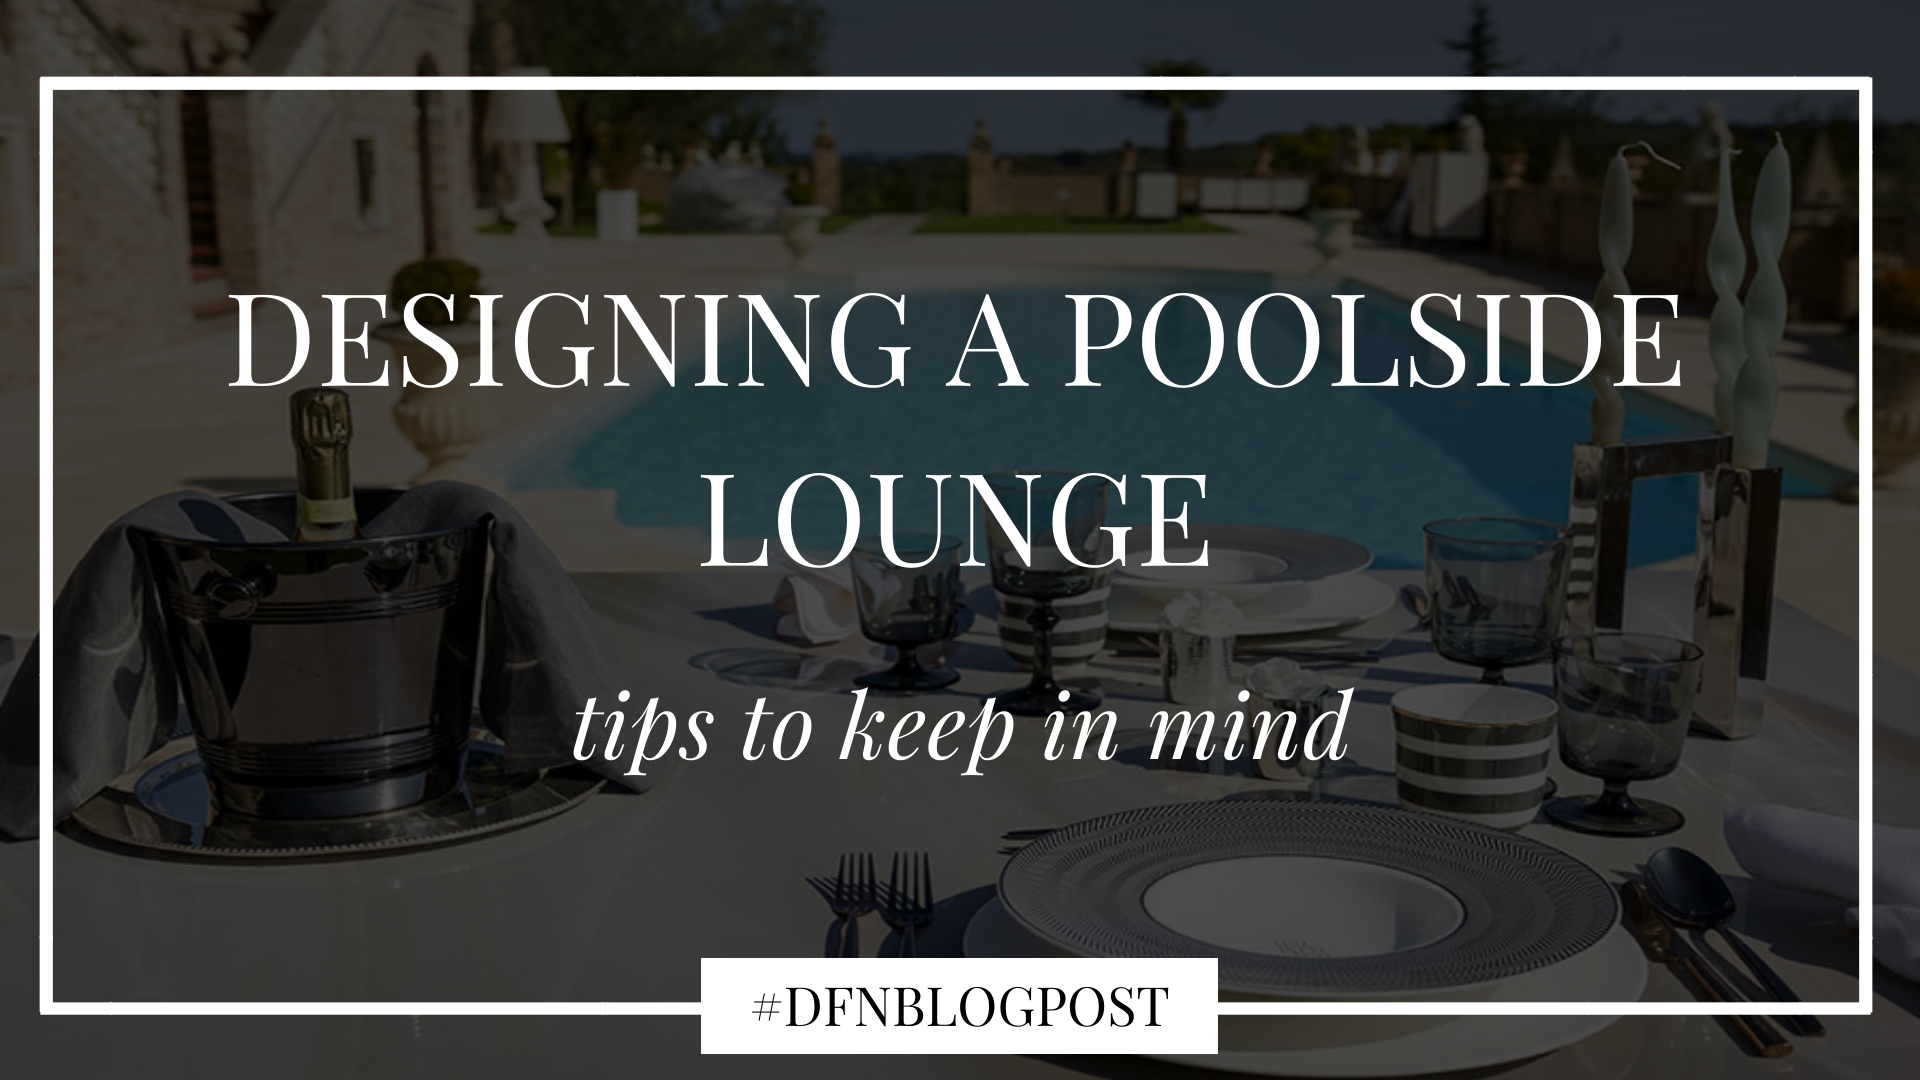 5+1 tips to keep in mind when designing a poolside lounge 1